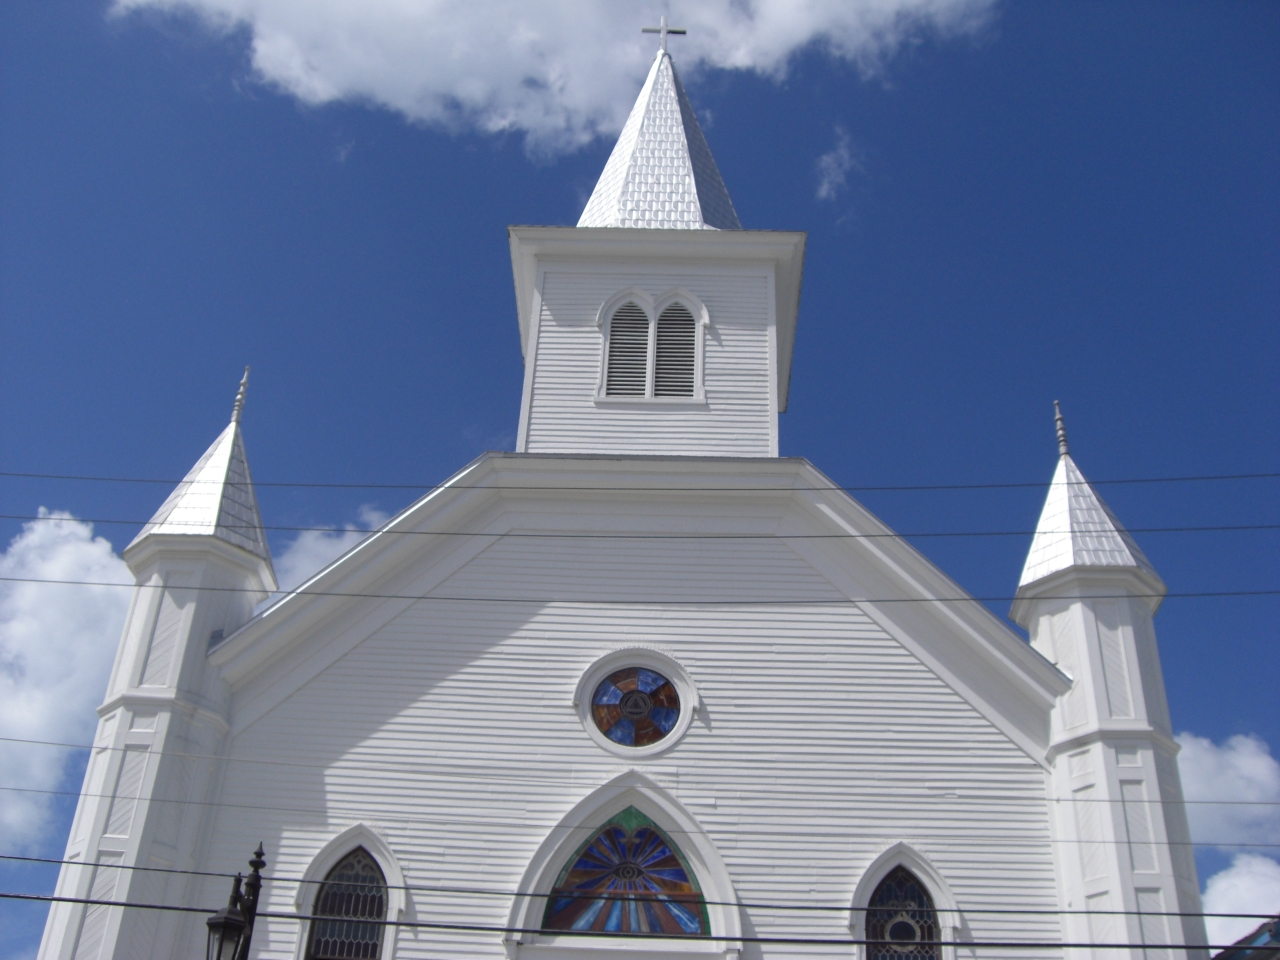 An other southernmost church